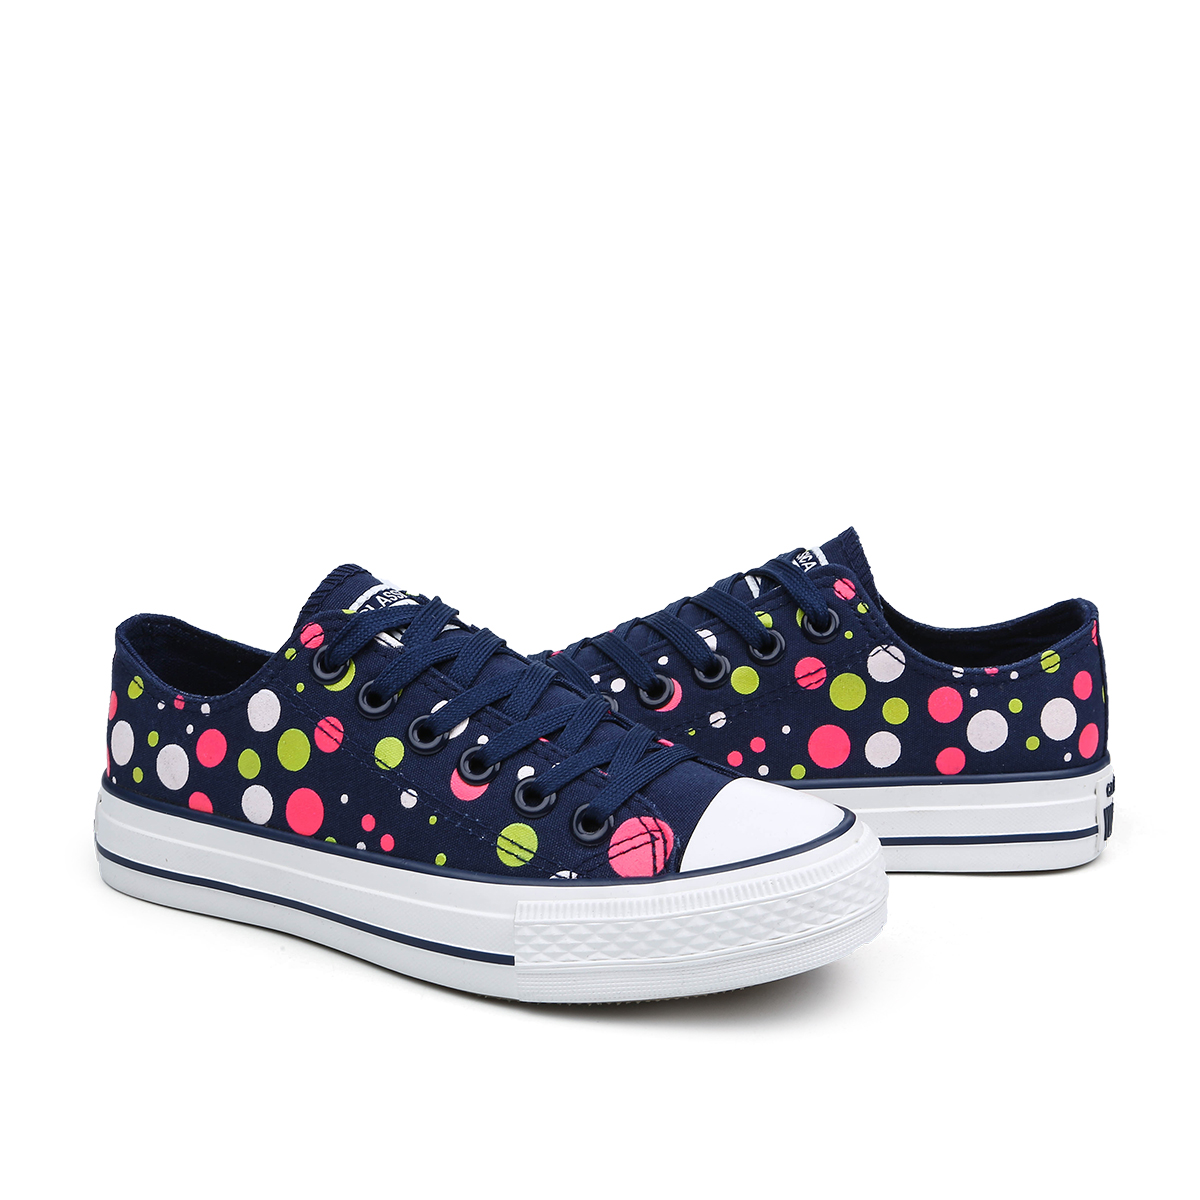 New Canvas Shoes Women Flats Female Spring Summer Students Shoes Fashion Low To Help With Round Dot Casual Shoes B2726<br><br>Aliexpress